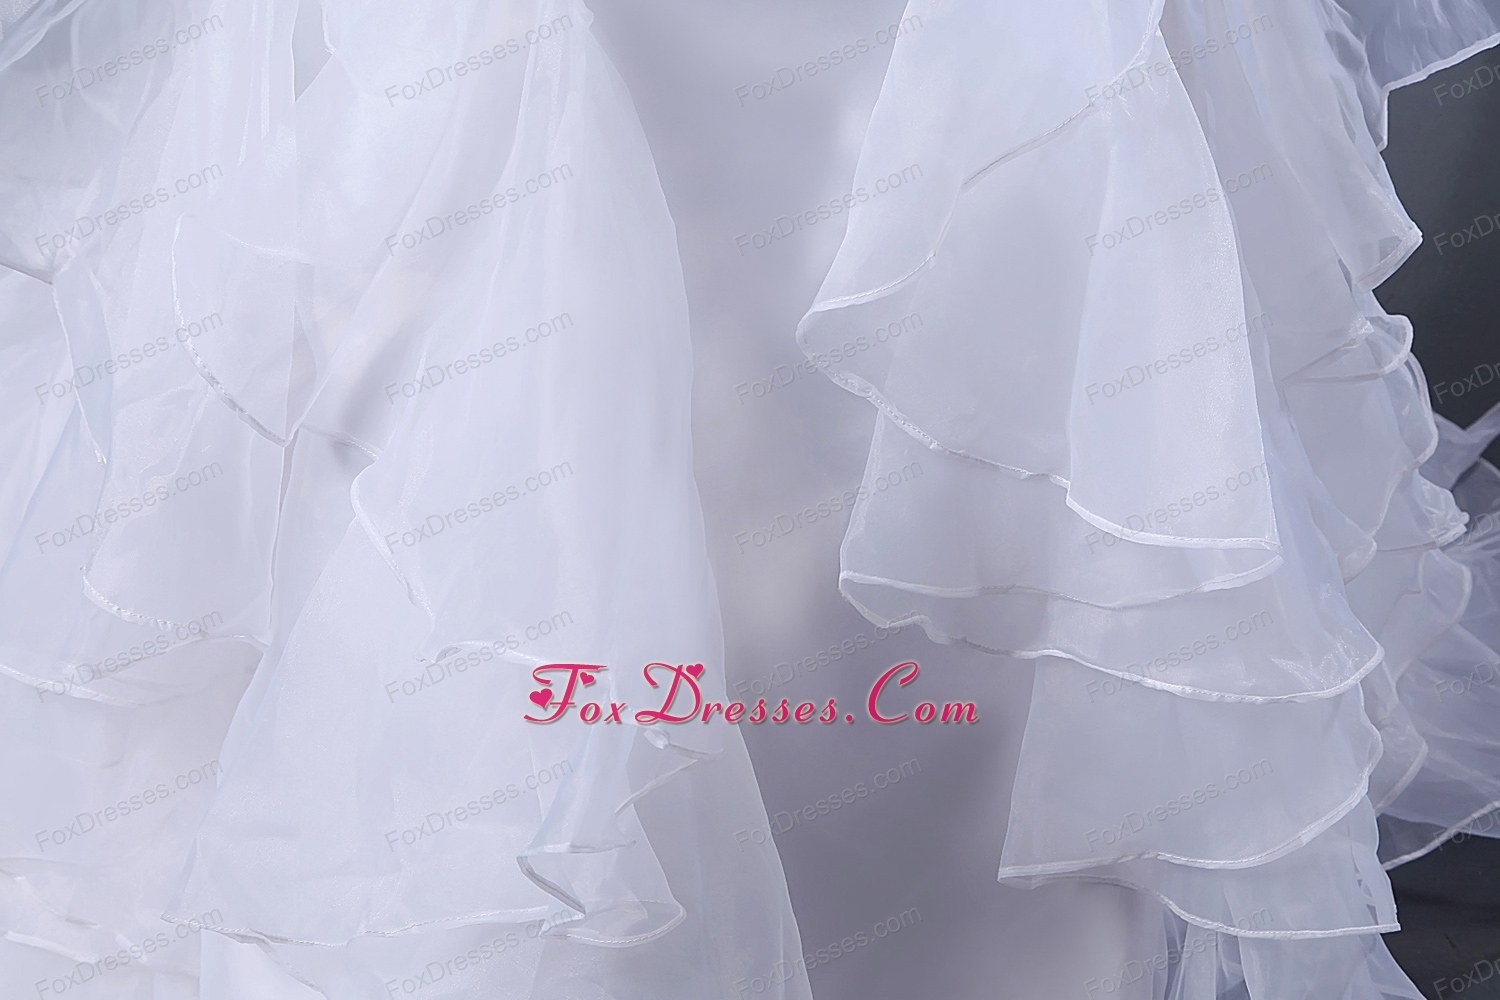 qualitied satin and organza wedding gown dresses in winter